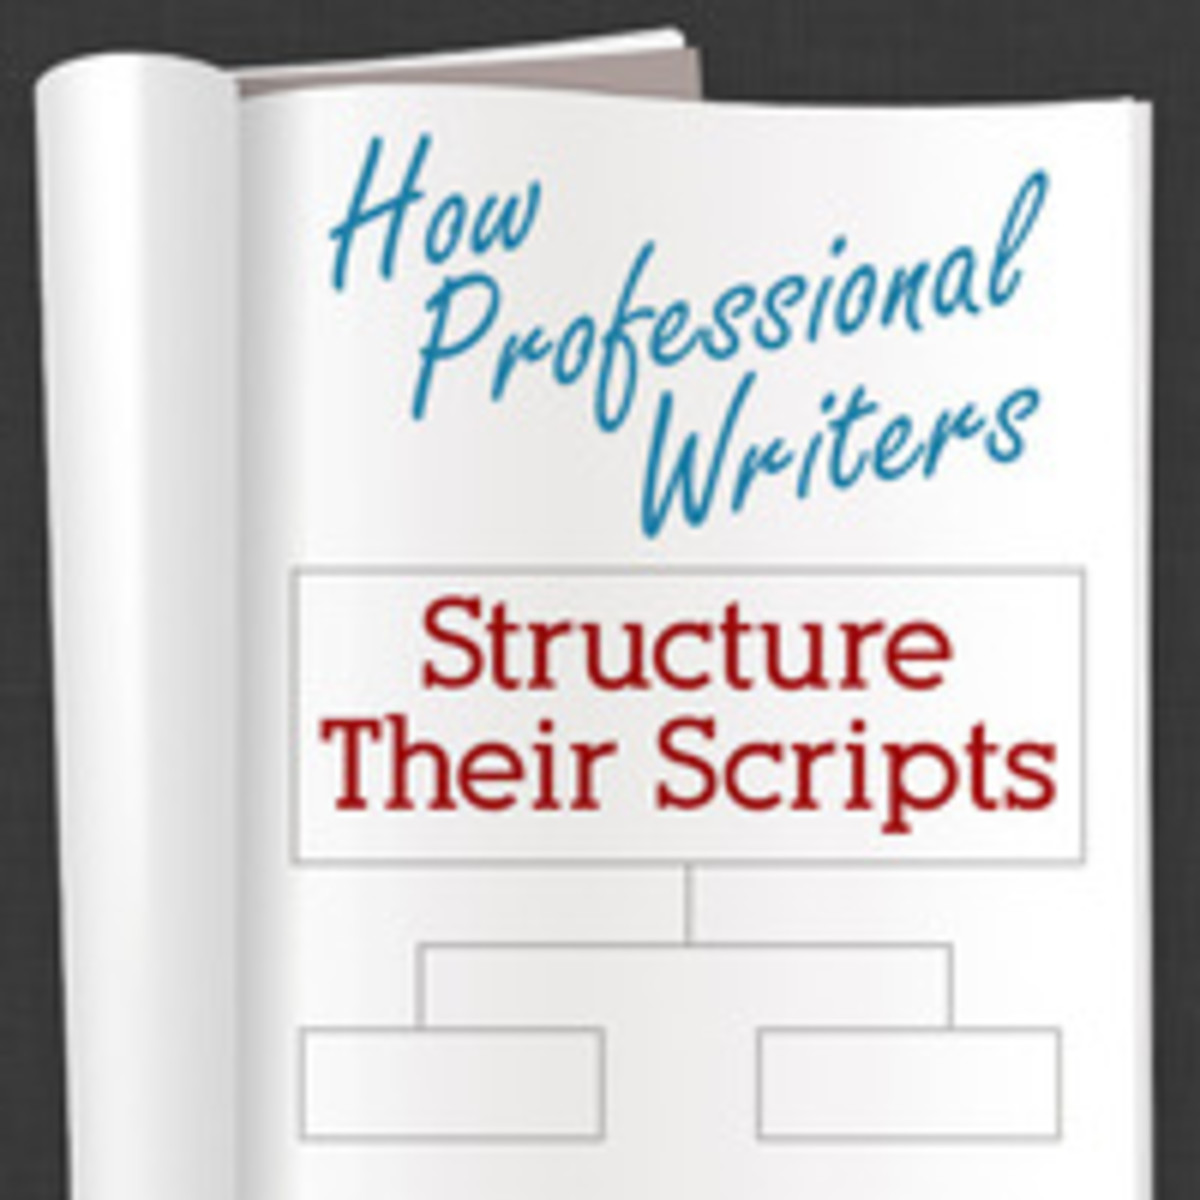 ws_professionalstructure_small